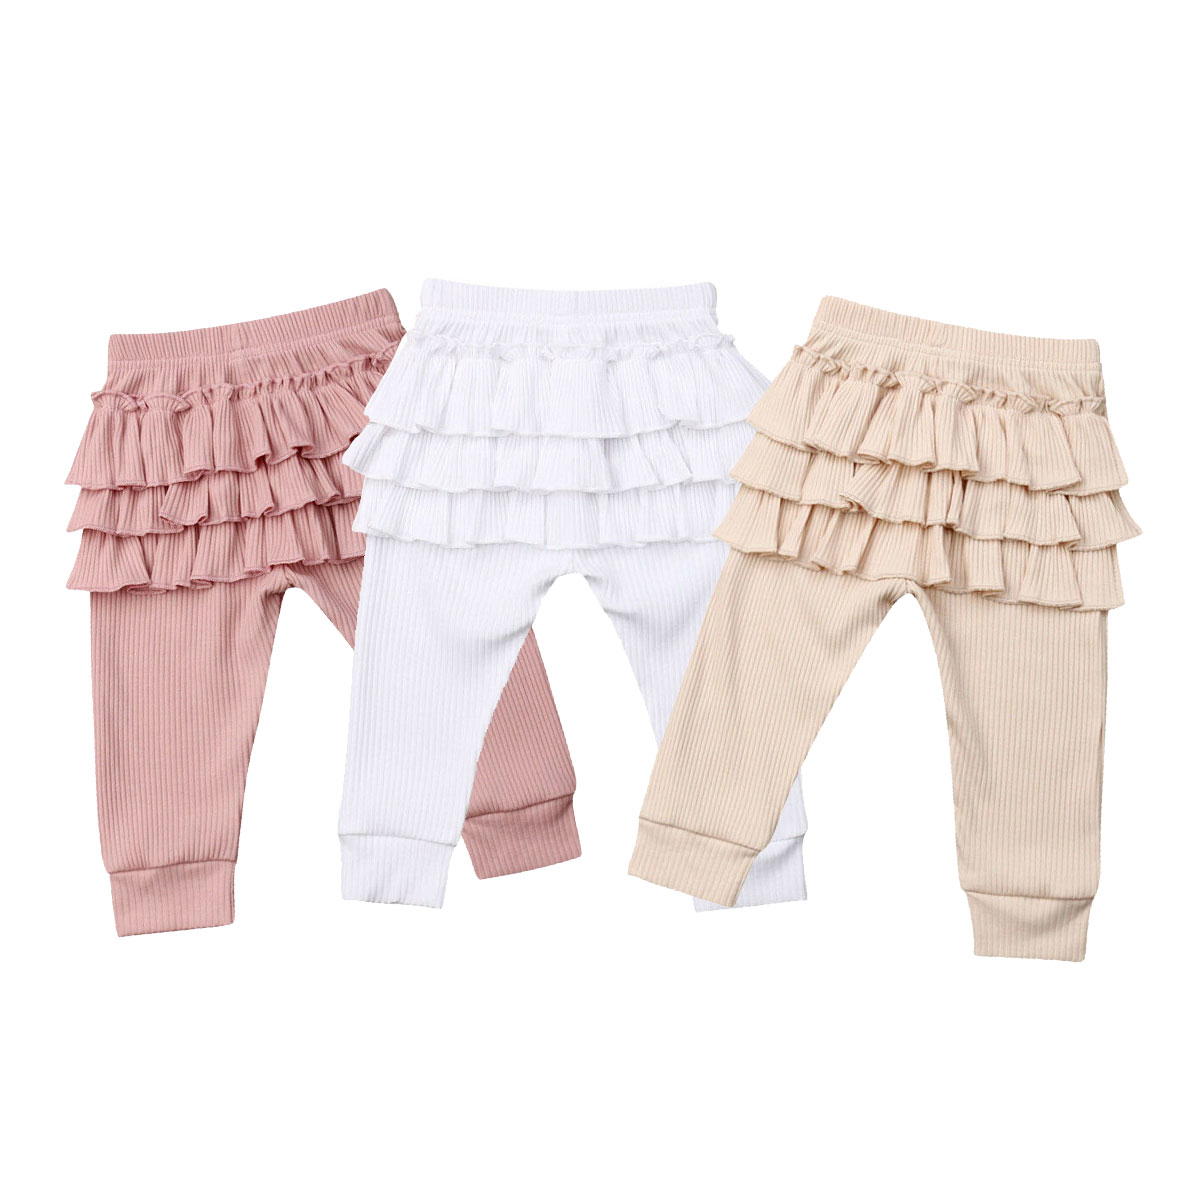 0-3Years Toddler Newborn Baby Kid Girls Pants Ruffles Princess Infant Baby Girls Bottom Girl Baby Costume 2019 New